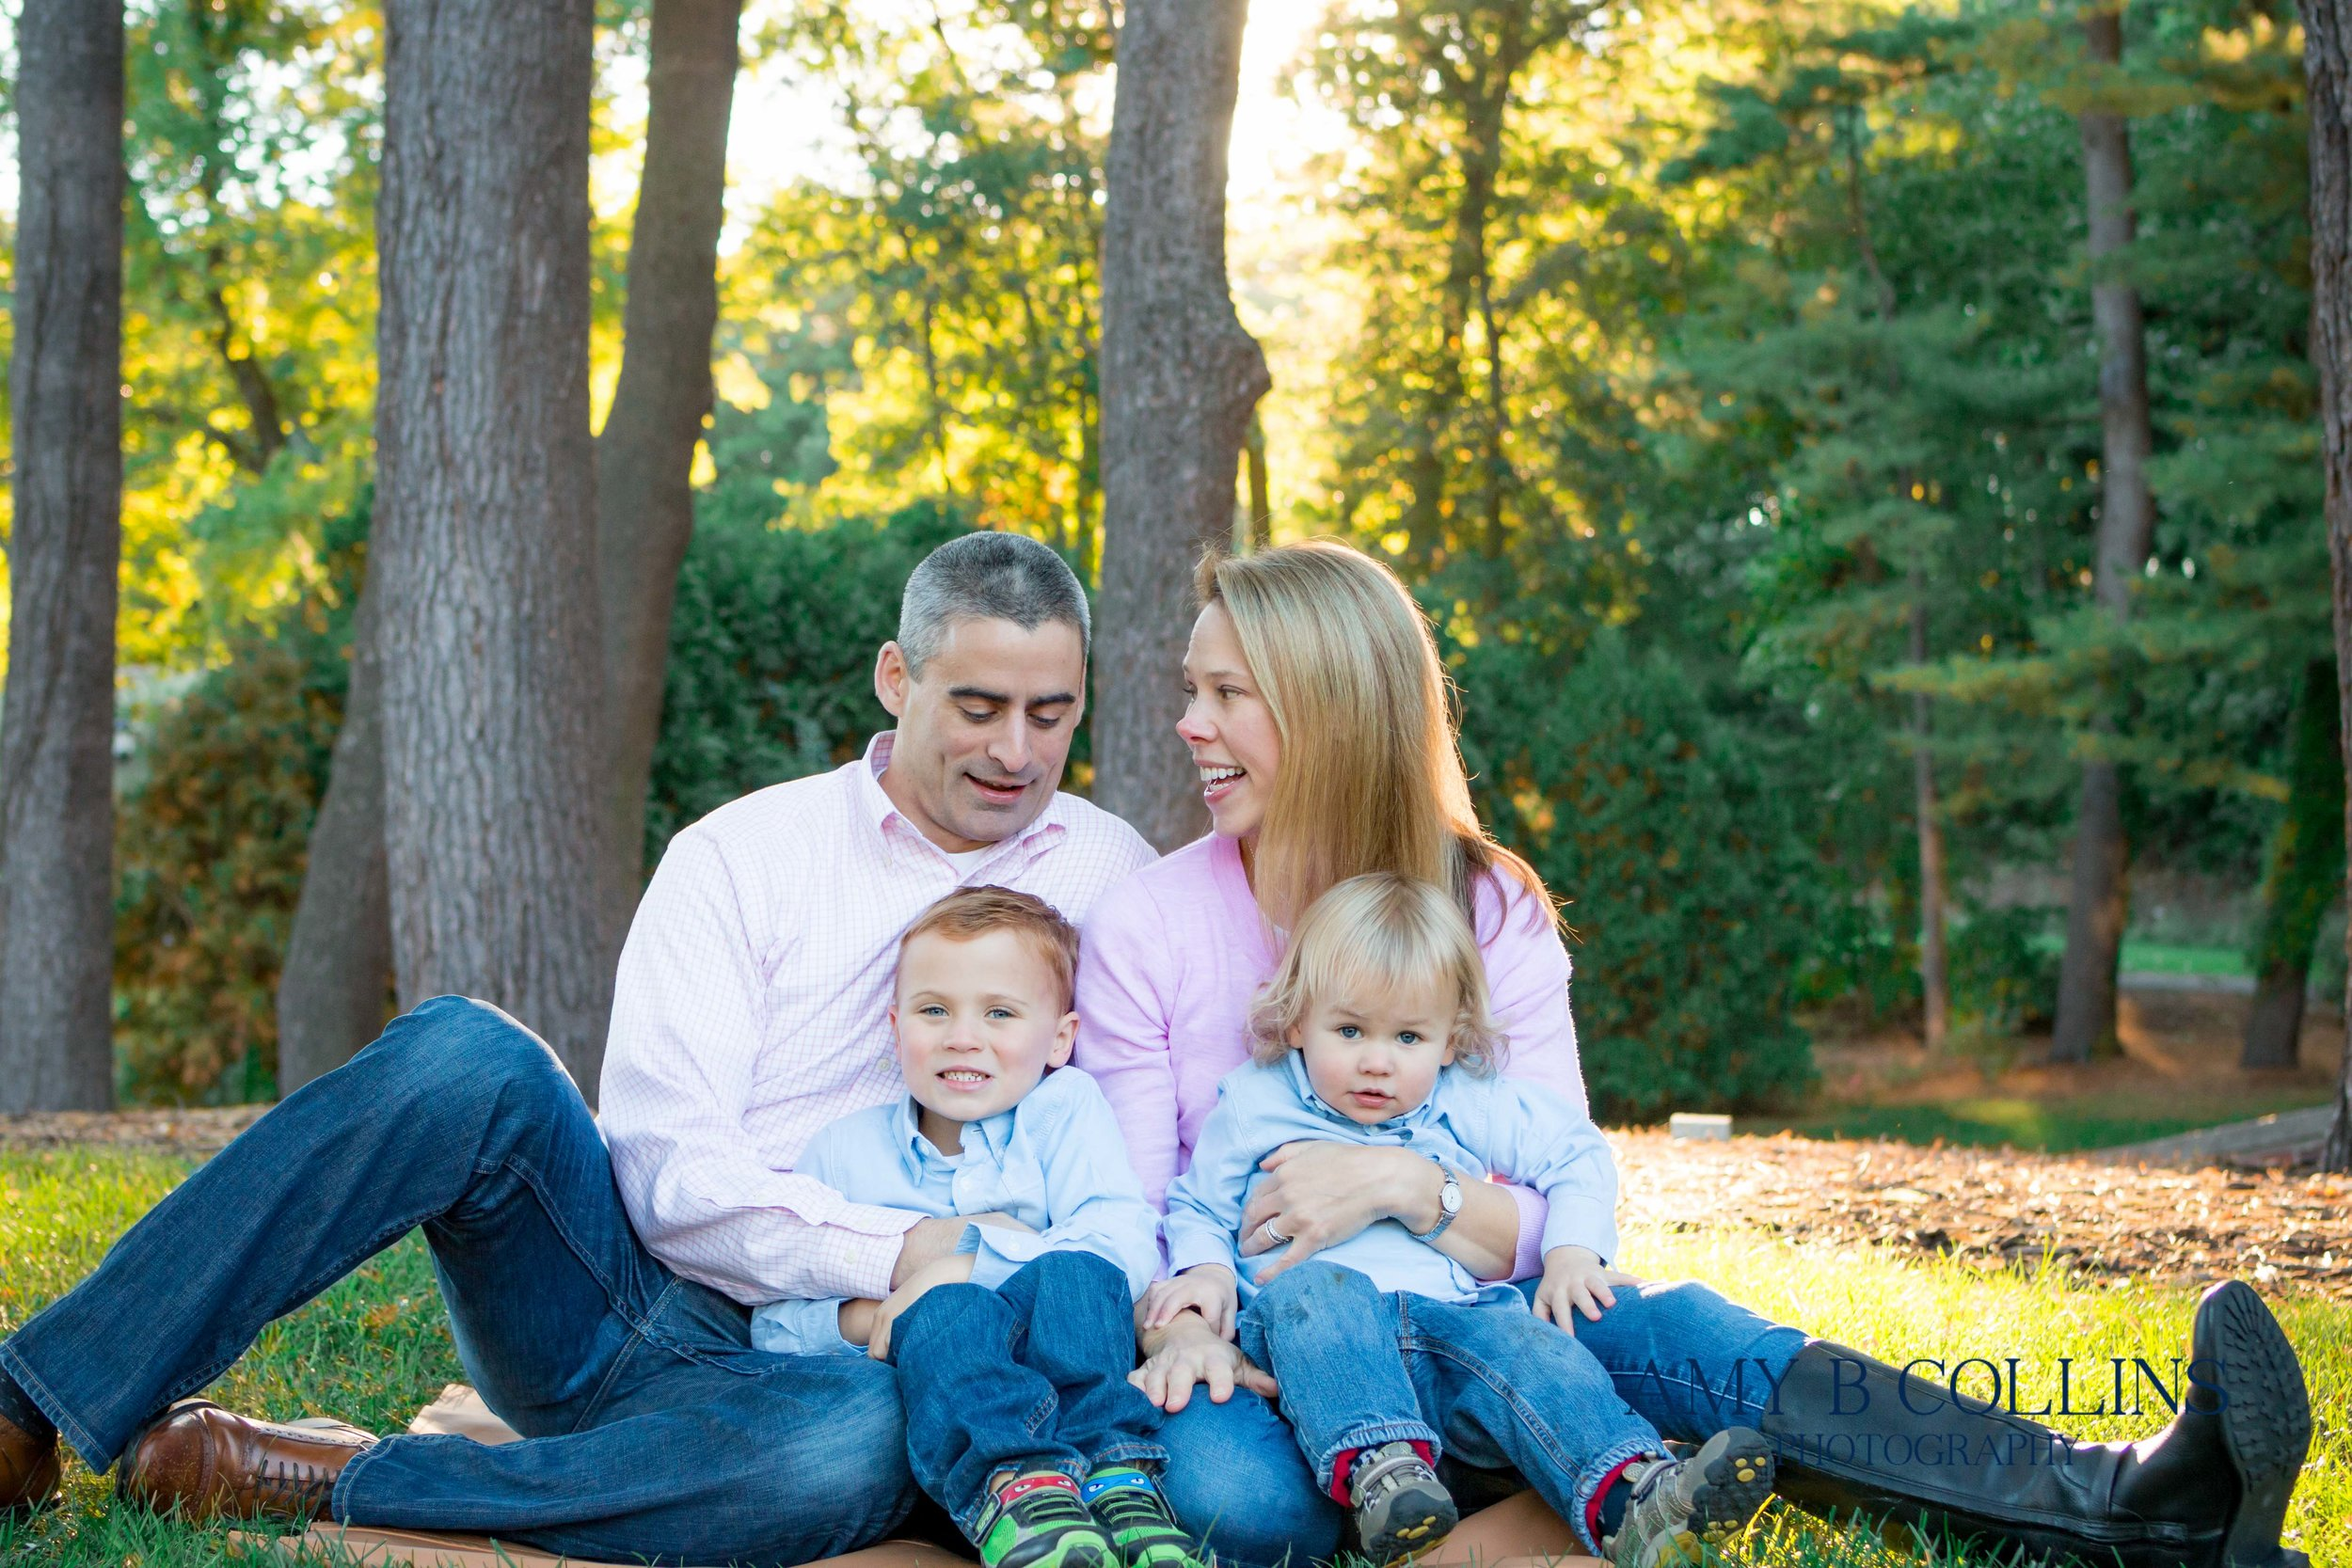 AmyBCollinsPhotography_FamilySession_H-3.jpg